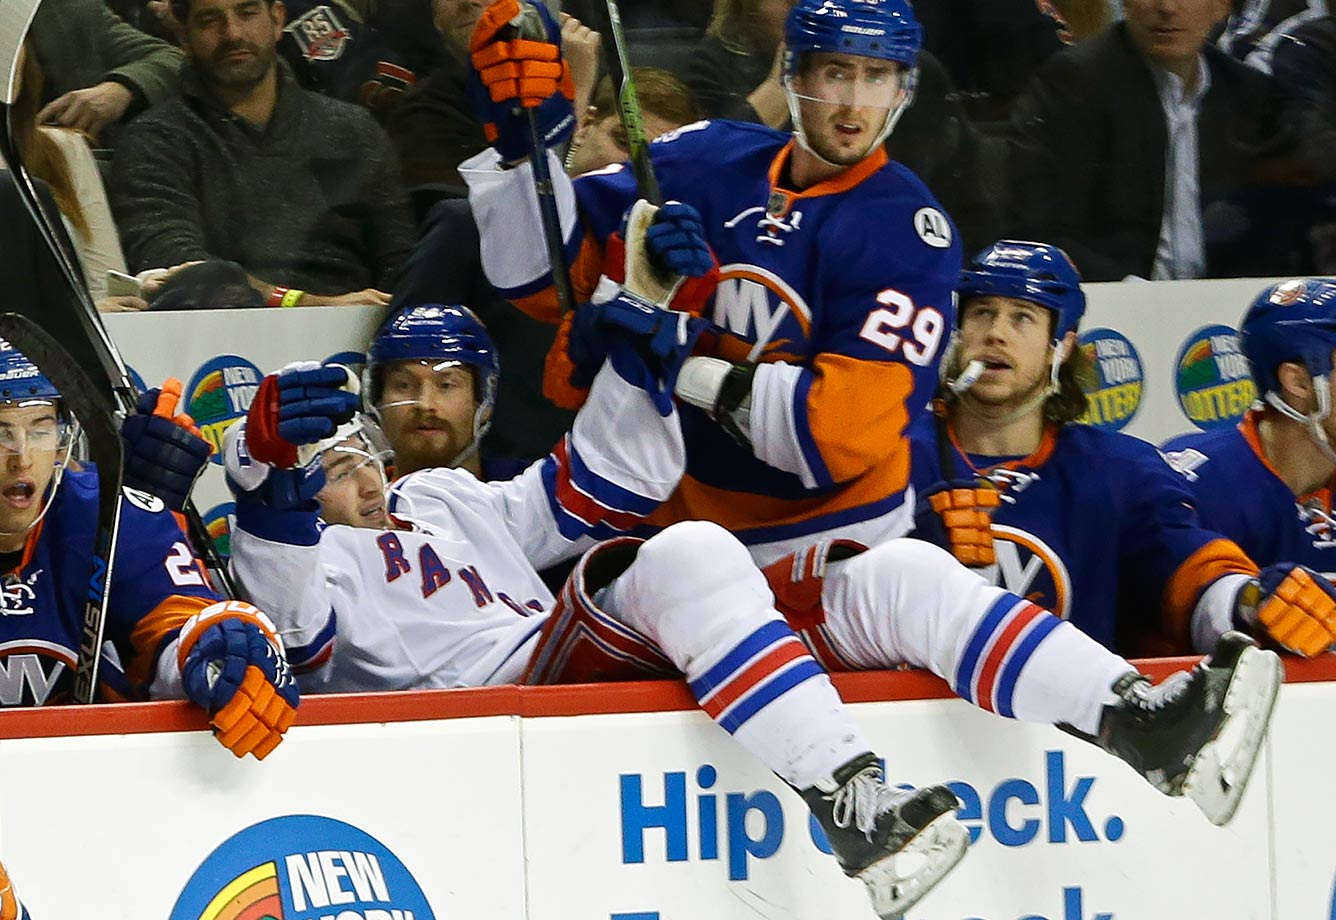 New York Islanders left wing Brock Nelson cannot be bothered by New York Rangers center Jayson Megna falling into the Isles' bench.